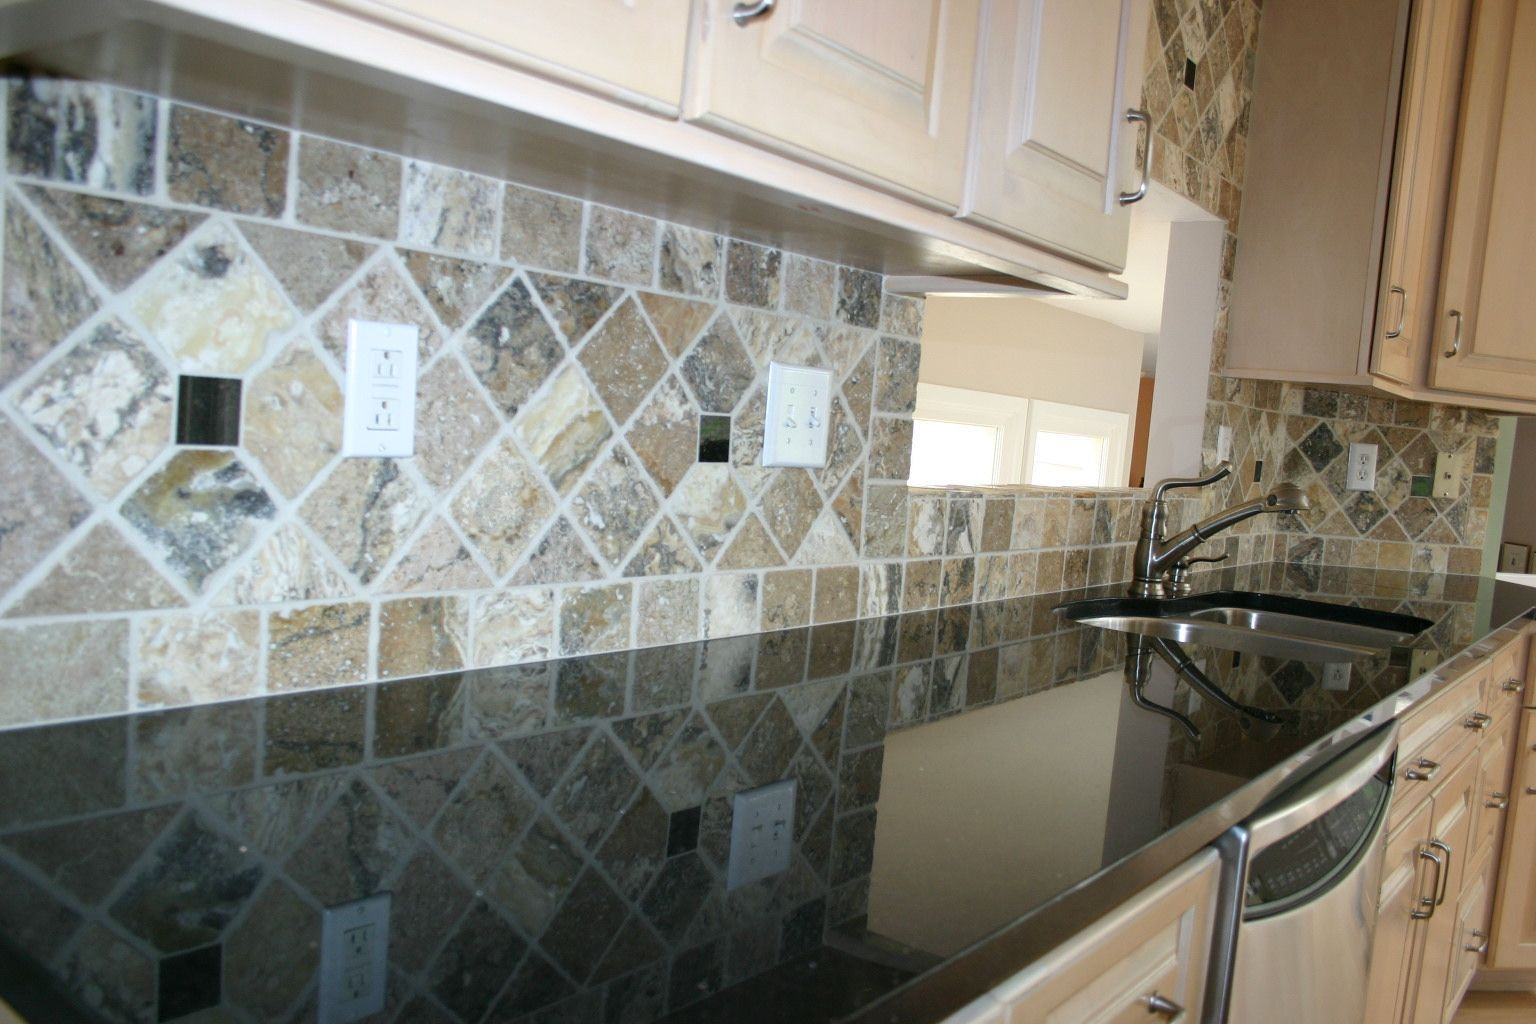 Kitchen Backsplash For Black Granite Countertops engaging-black-galaxy-granite-countertops-white-broken-stained